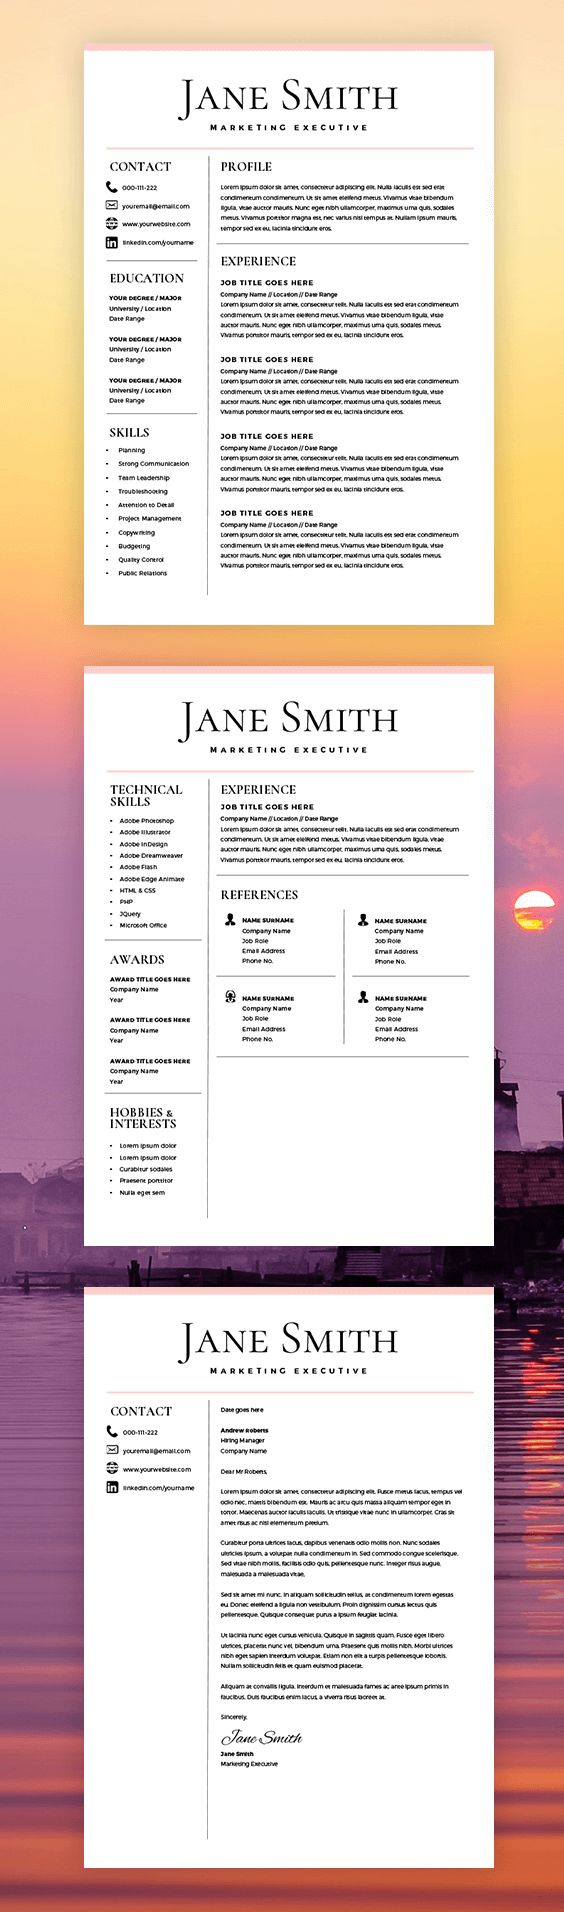 Resume Template CV Template Free Cover Letter MS